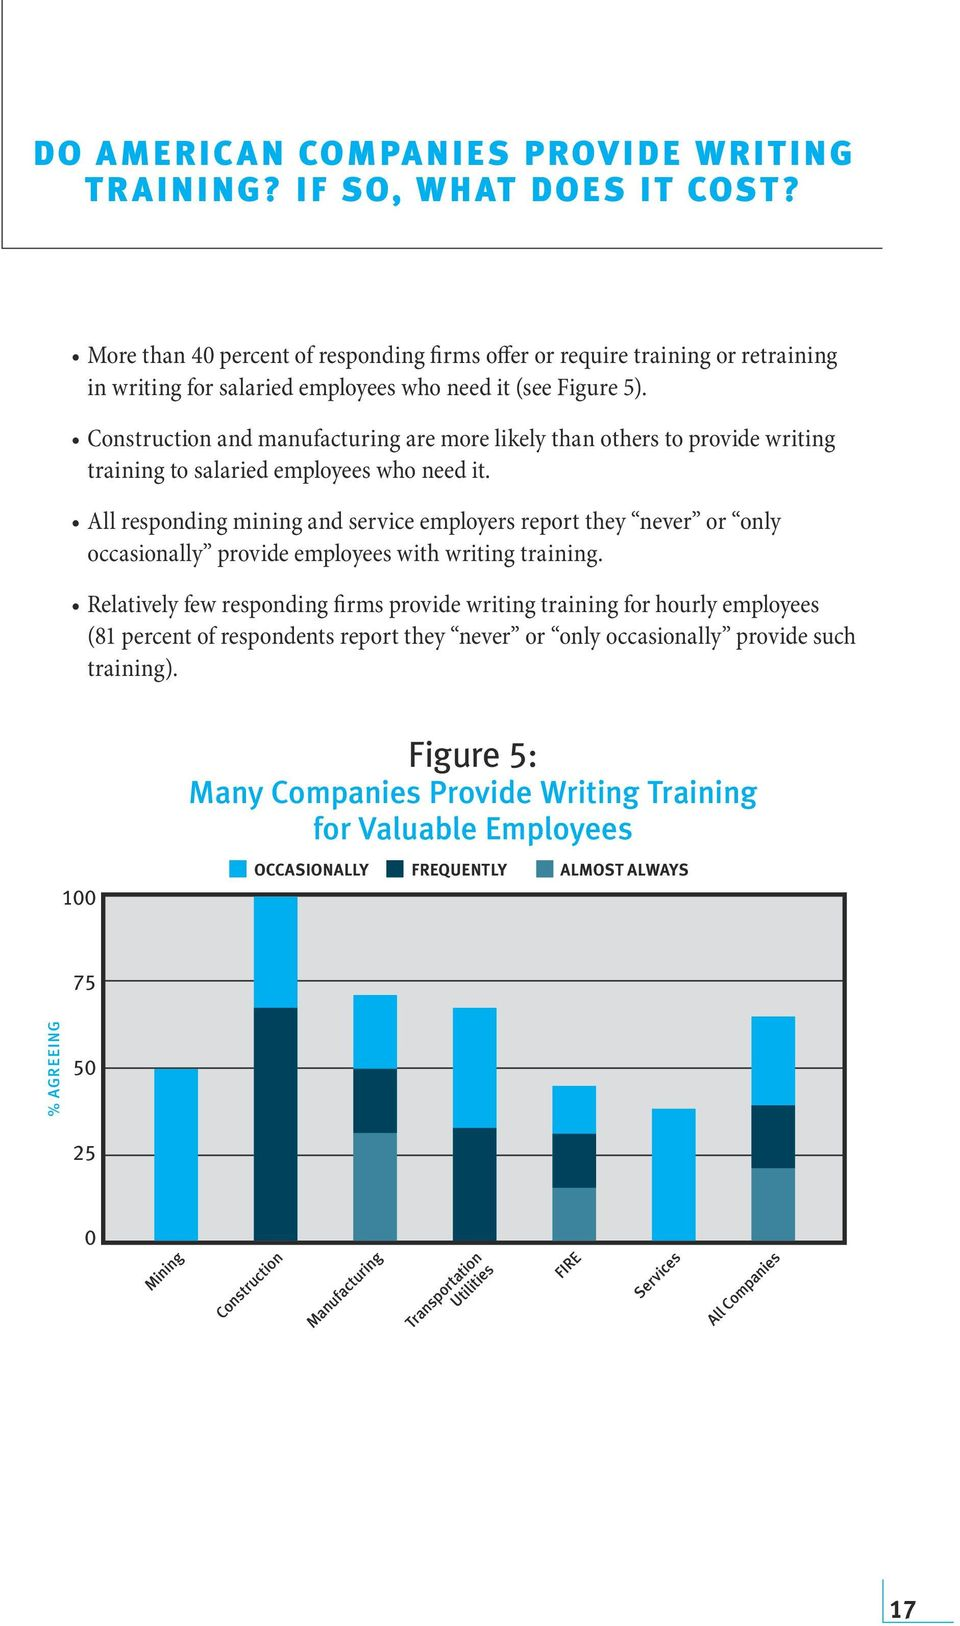 Construction and manufacturing are more likely than others to provide writing training to salaried employees who need it.